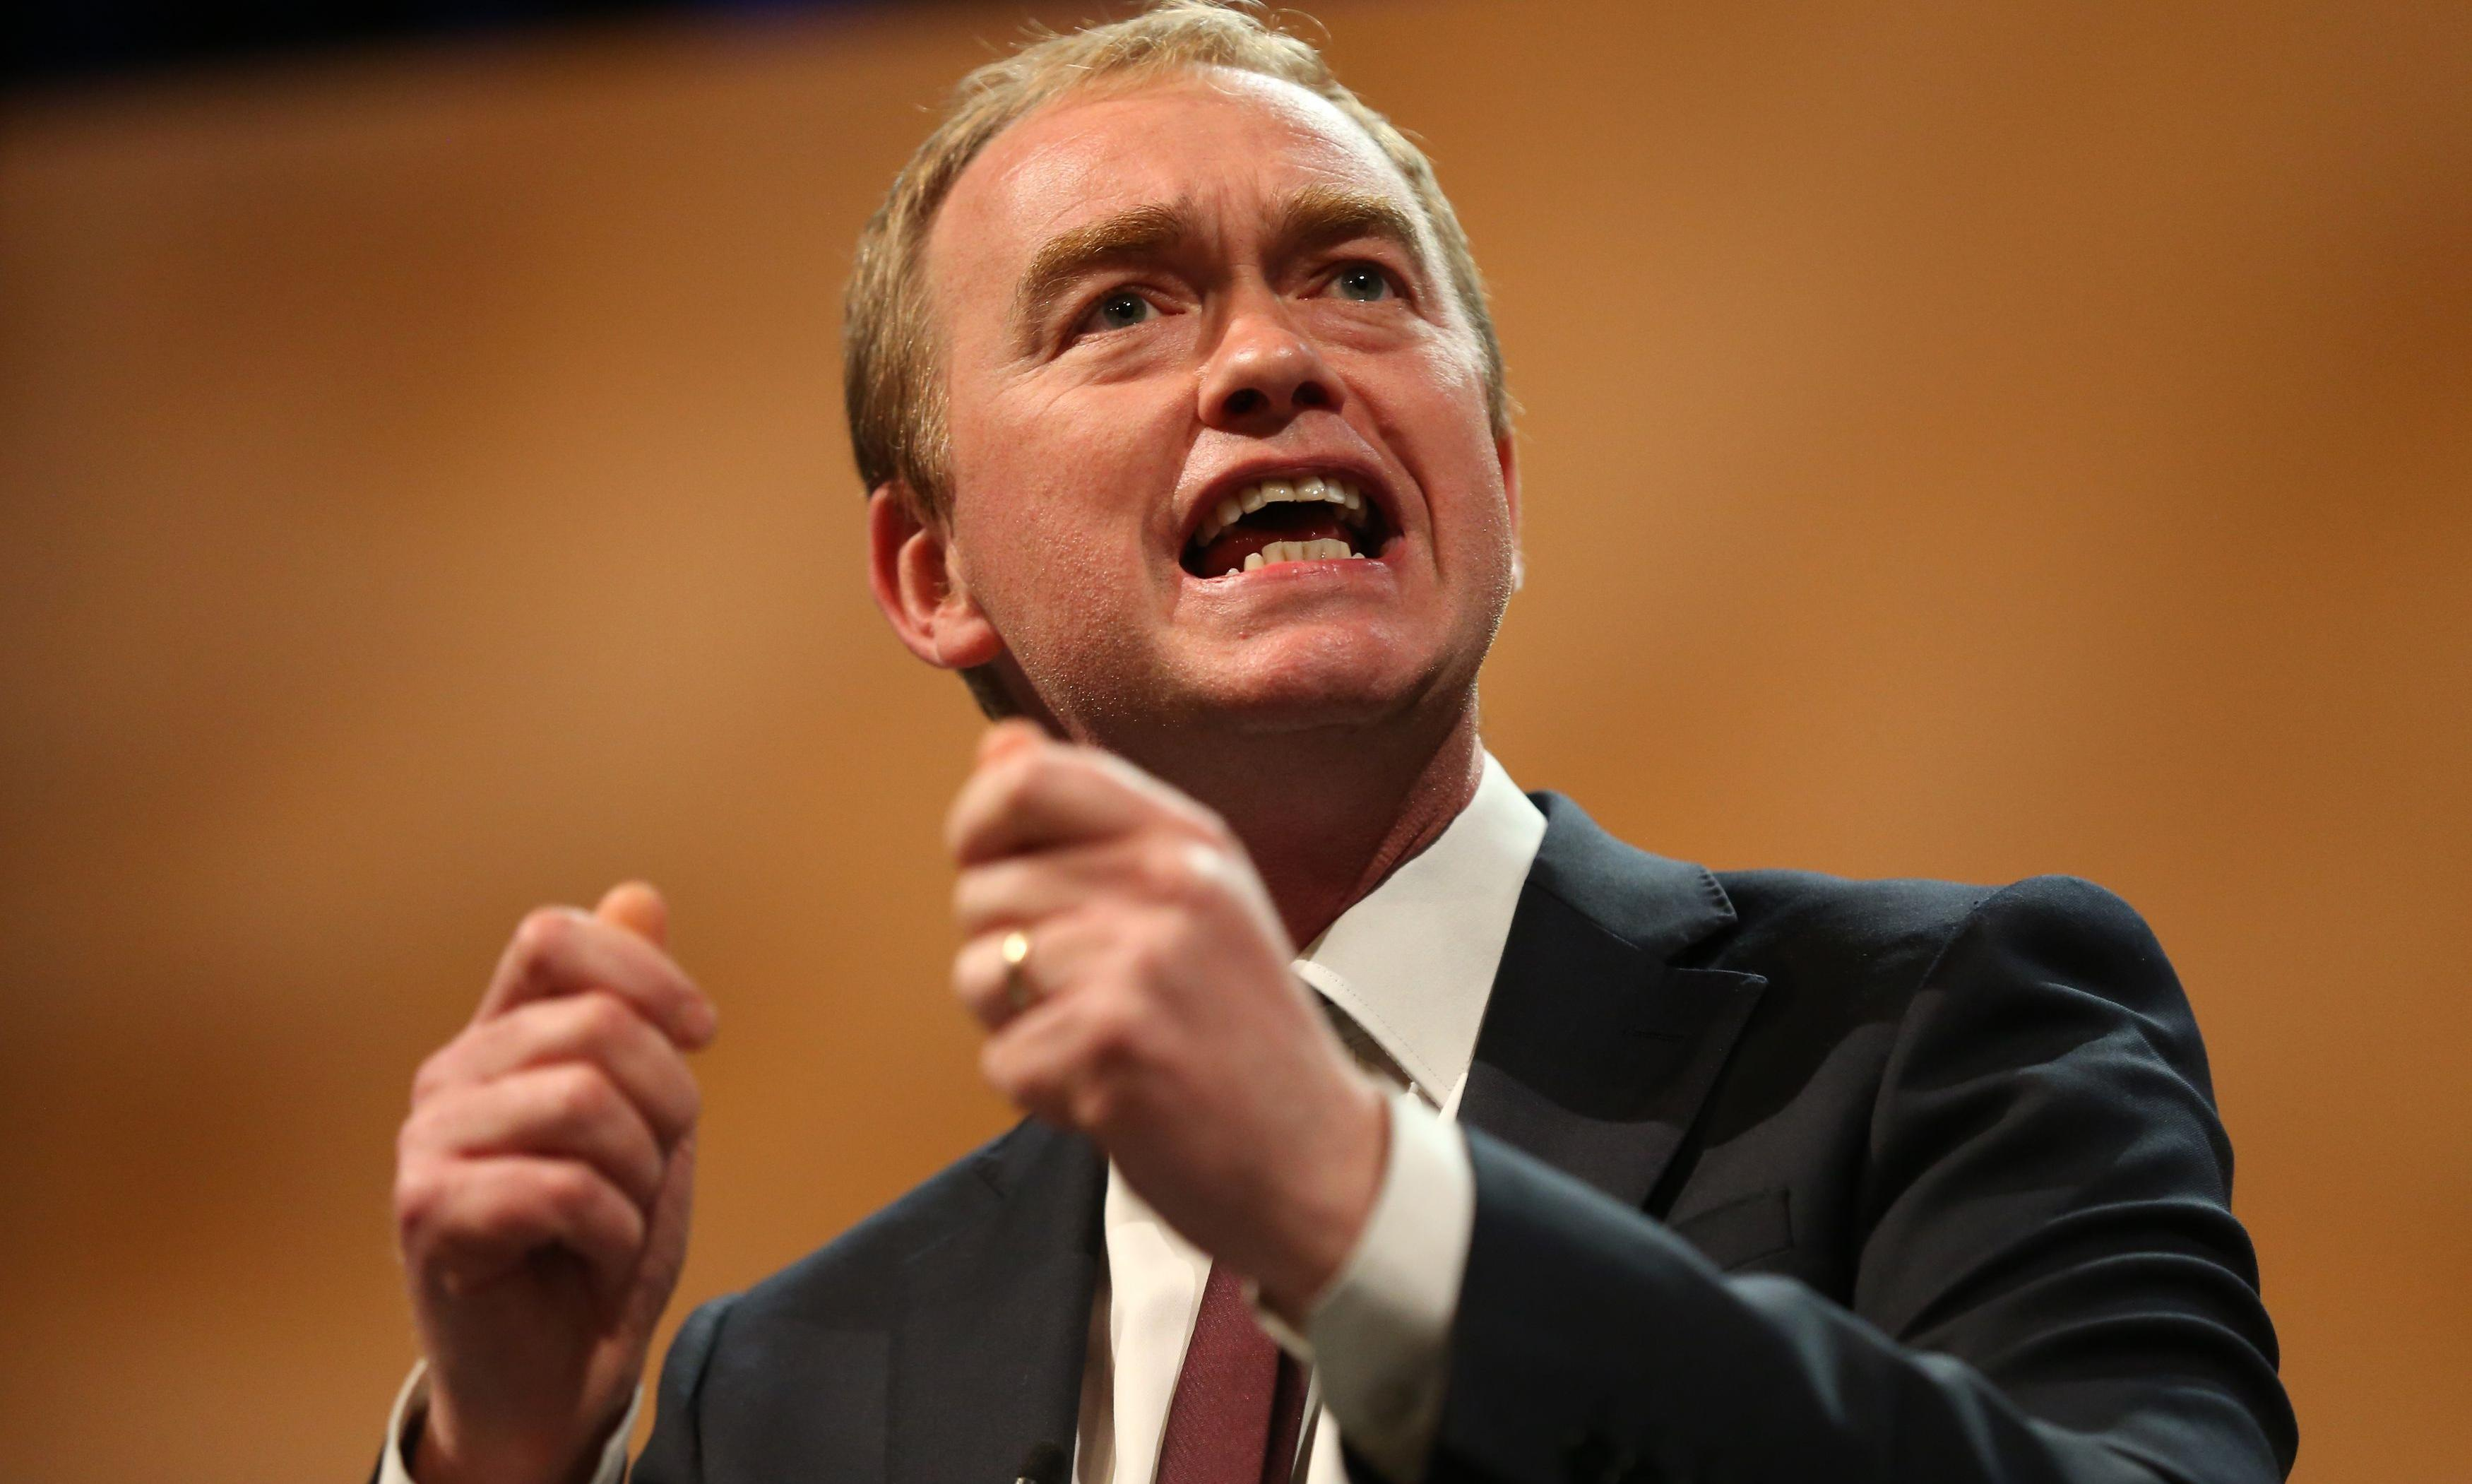 BHA clashes with Tim Farron over equine welfare before Westminster debate